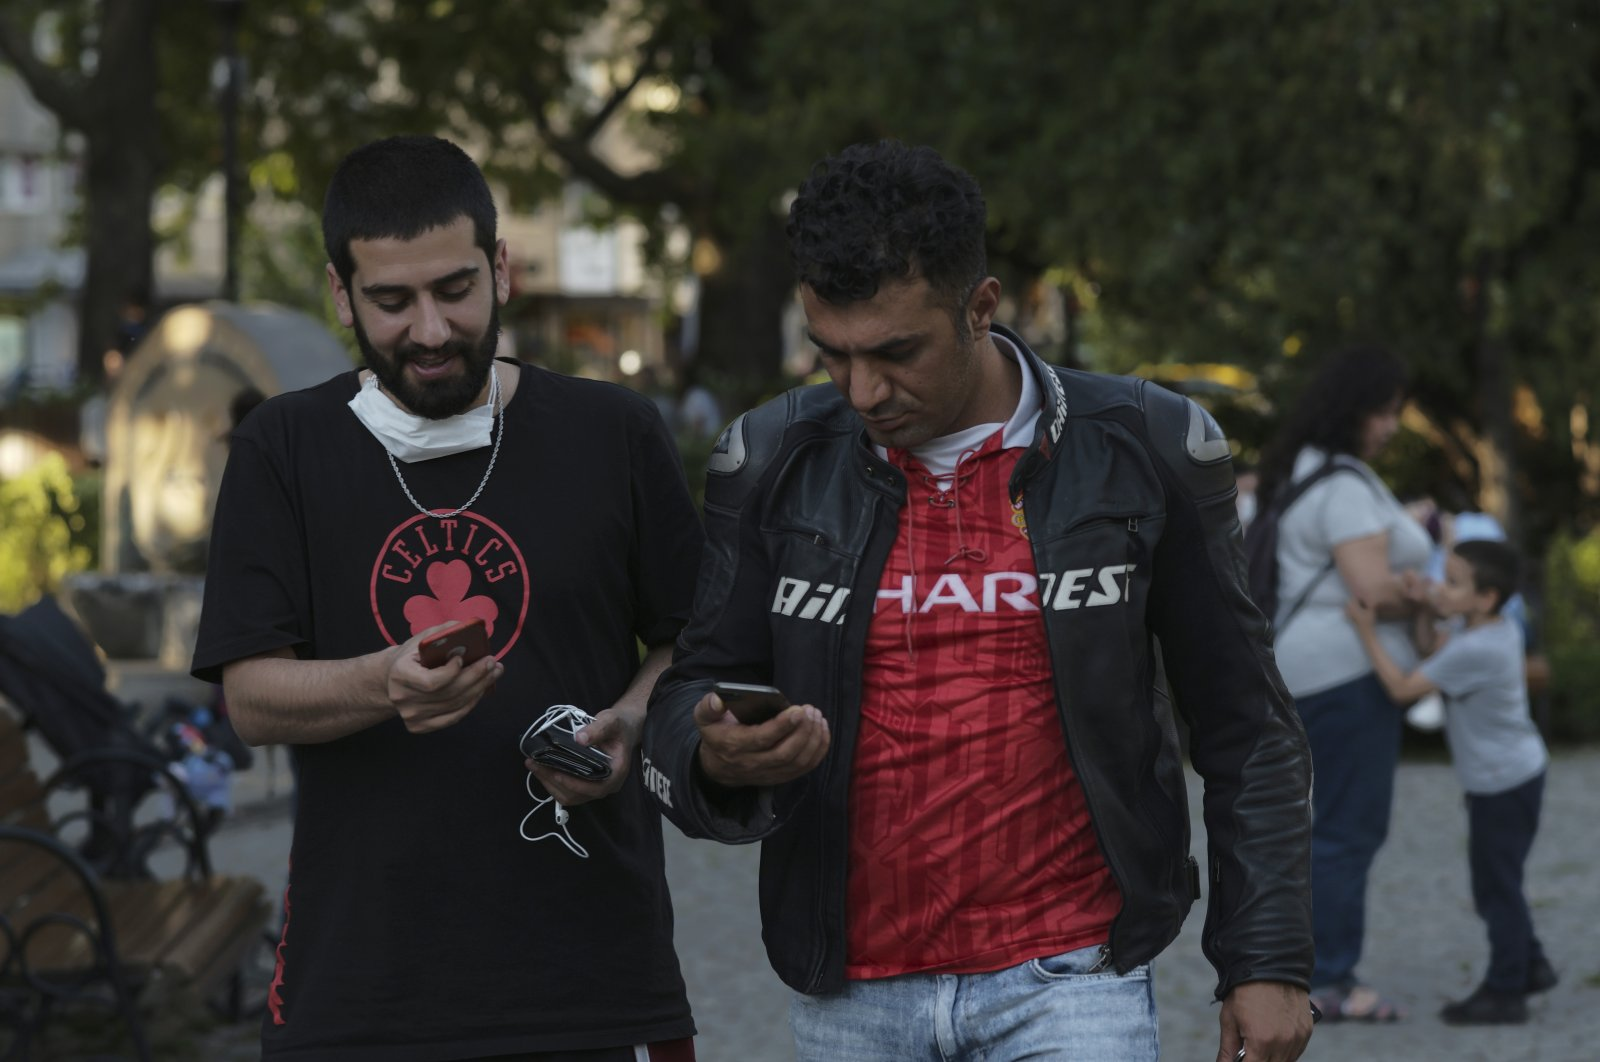 Two men without face coverings speak as they check their mobile phones in a public garden, in Ankara, Turkey, Tuesday, June 30, 2020. (AP Photo)